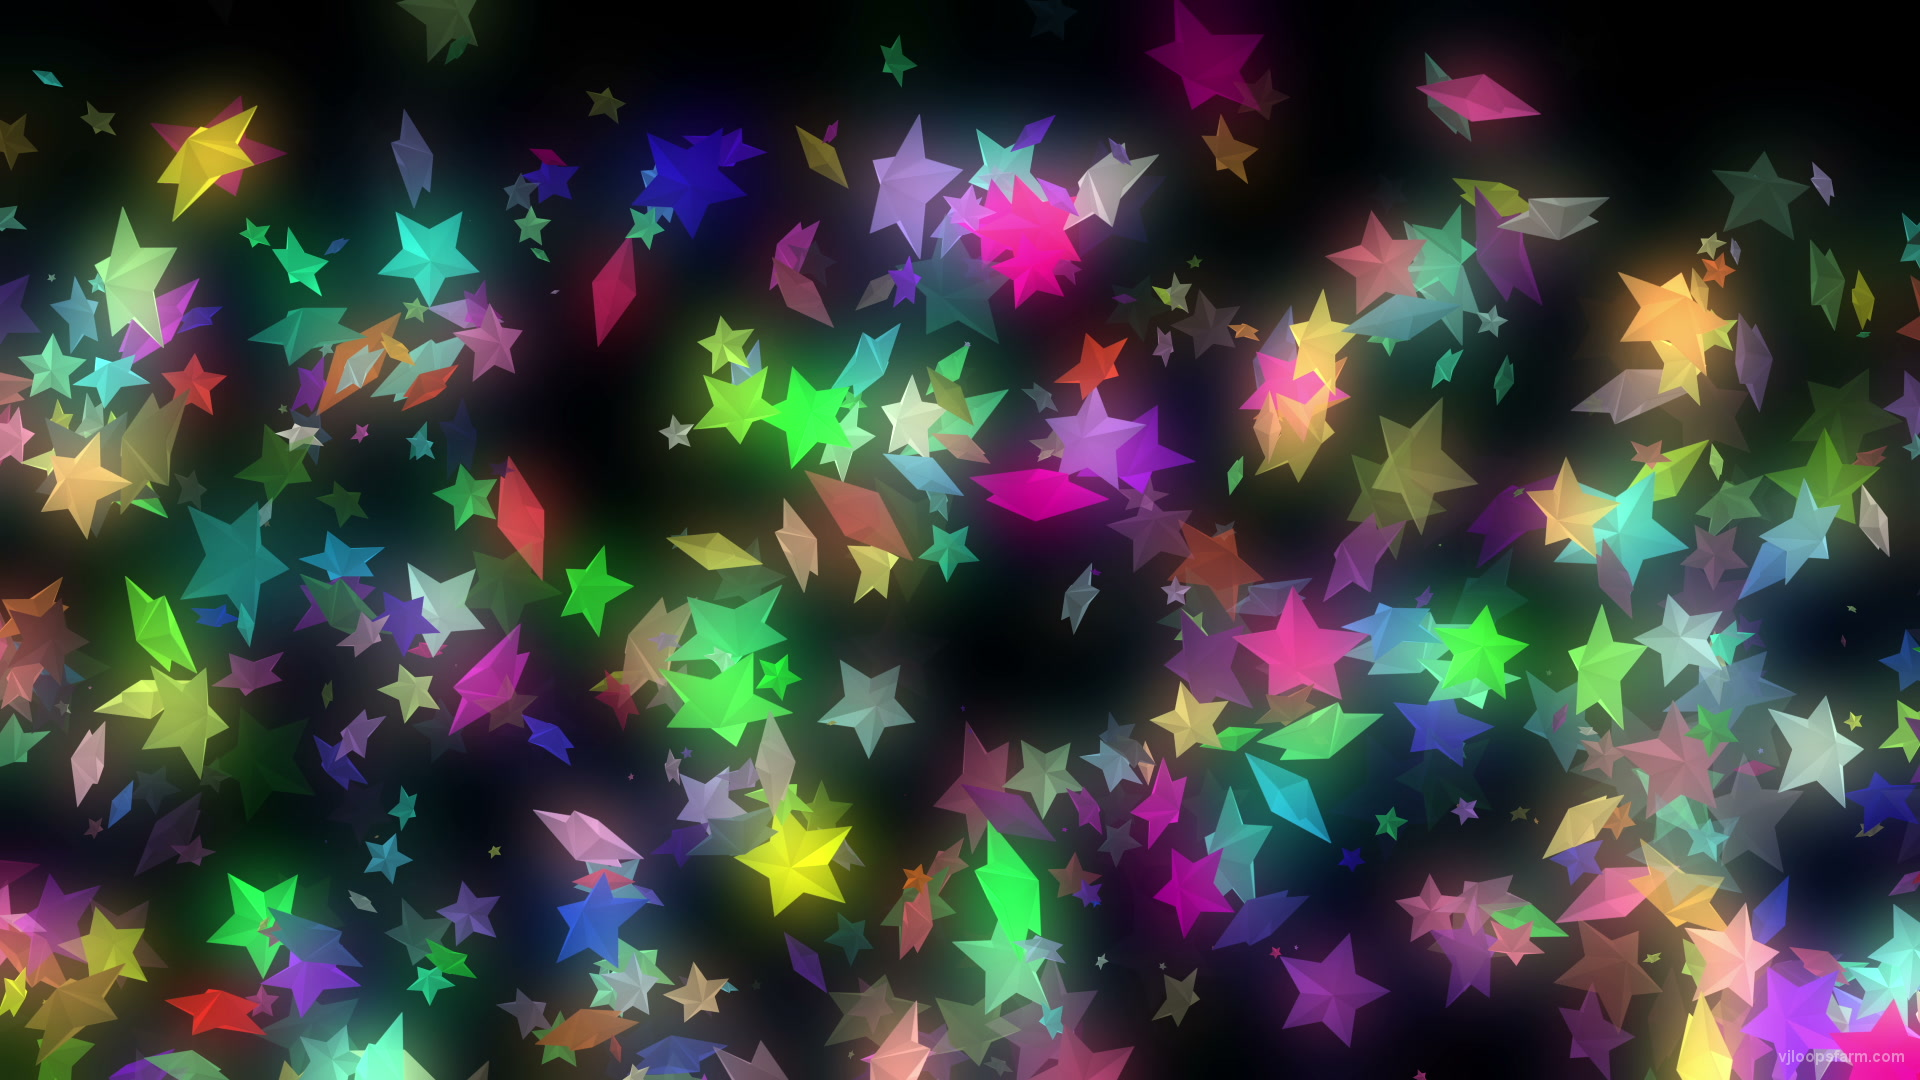 vj video background Shining-stars-up-down_1_003